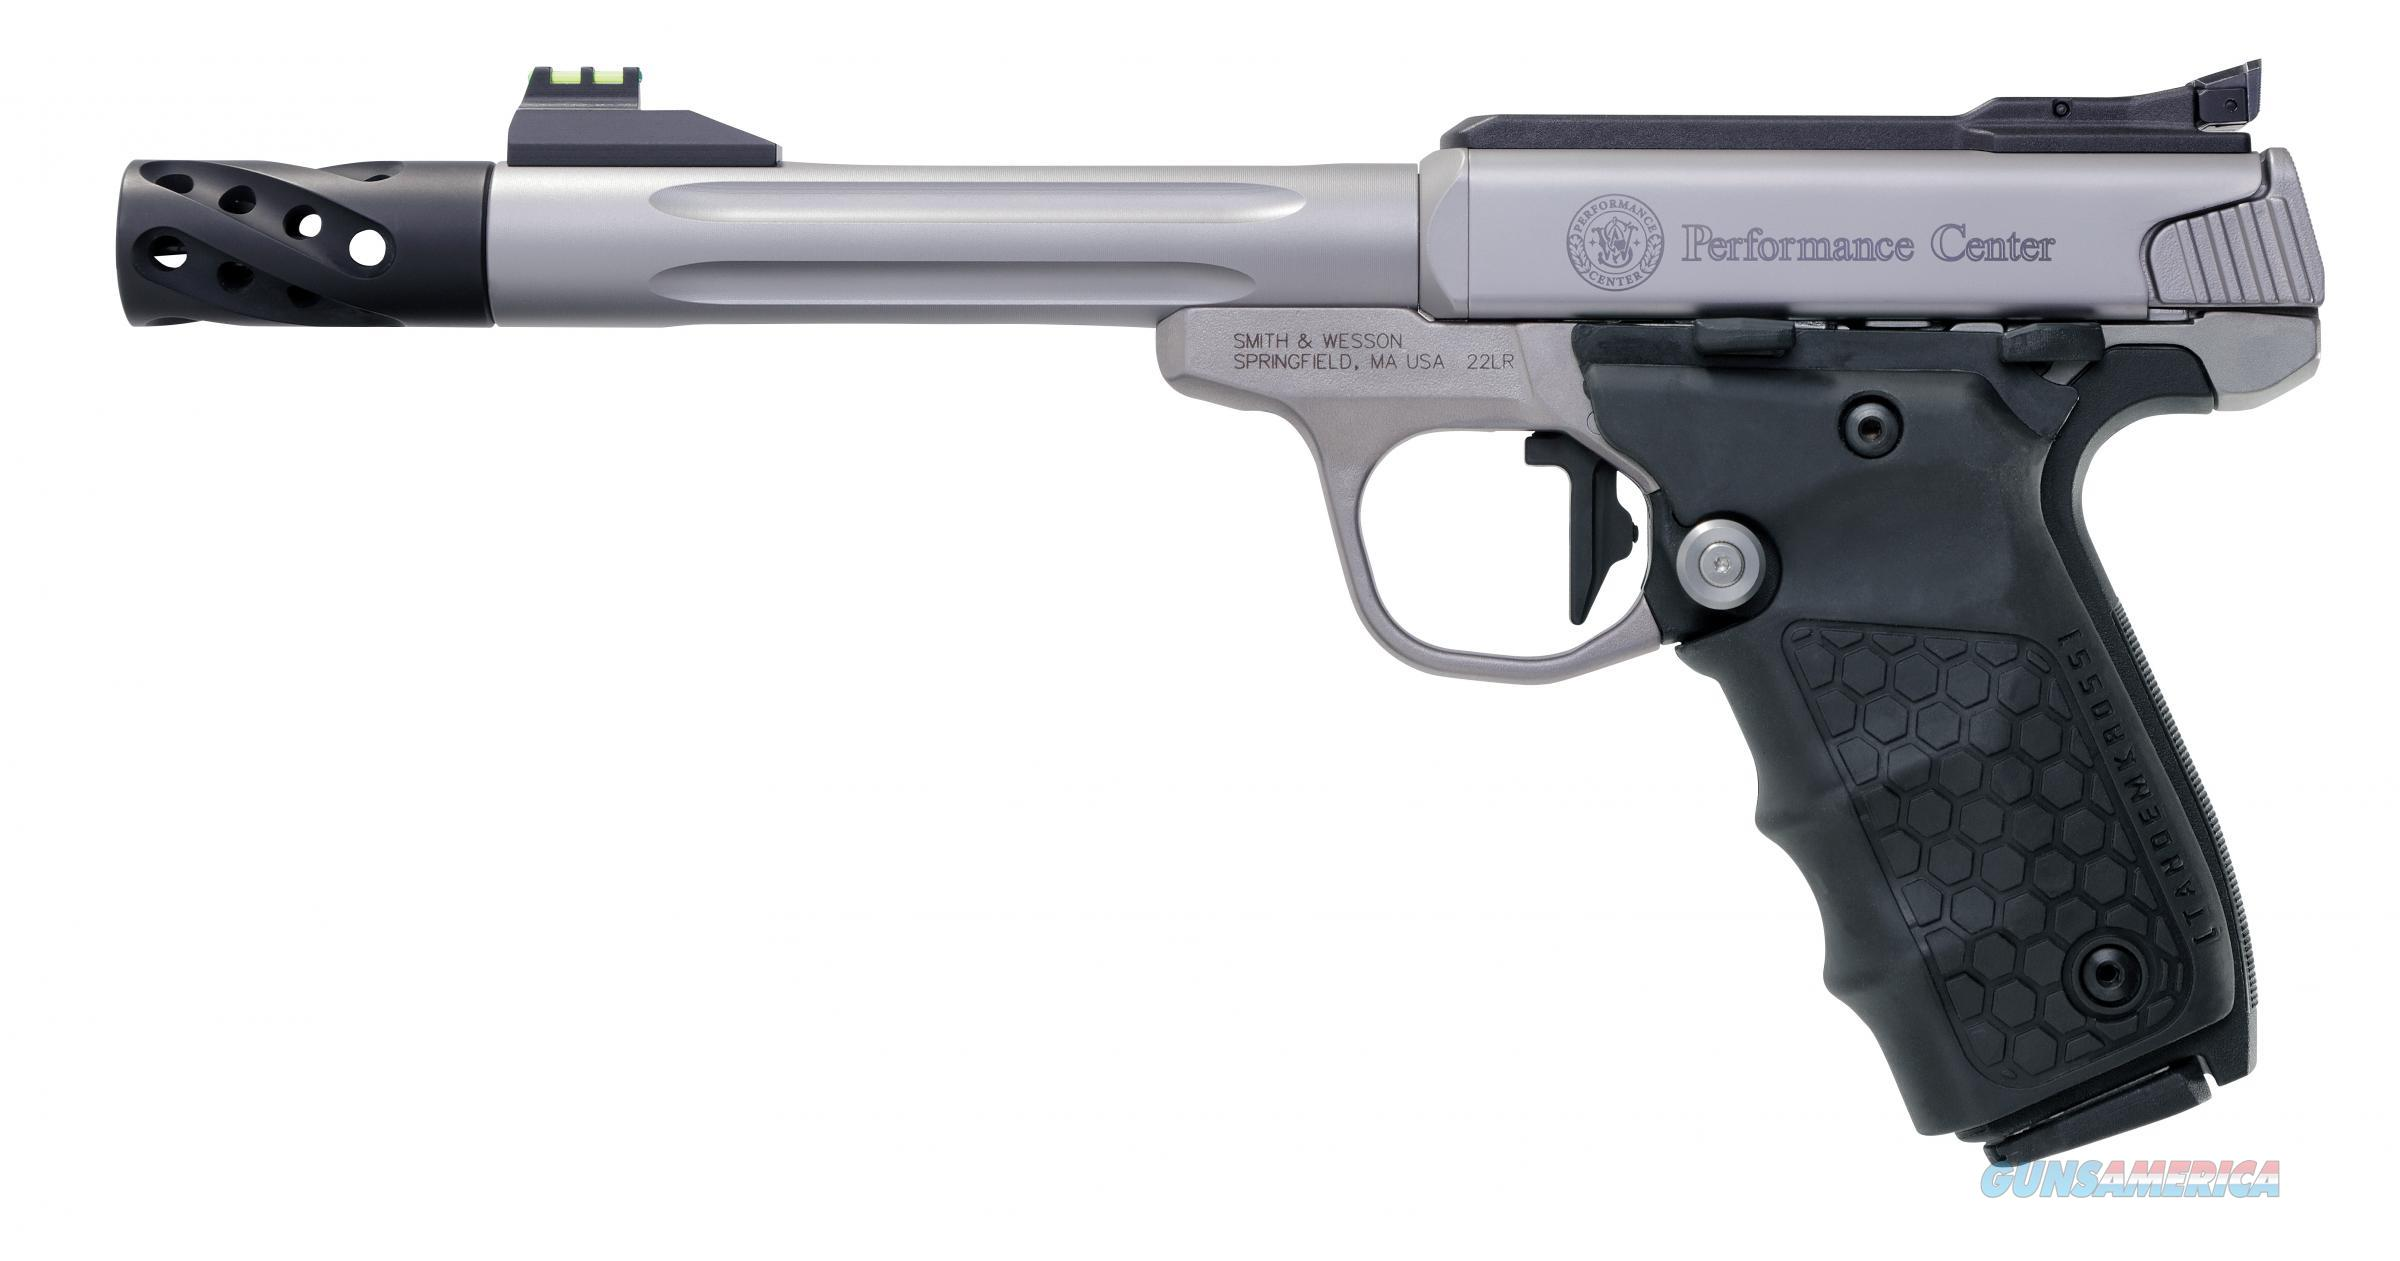 "Smith & Wesson SW22 Performance Center Victory .22 LR 6"" Target Barrel Fiber Optic 12078 *NEW*  Guns > Pistols > Smith & Wesson Pistols - Autos > .22 Autos"